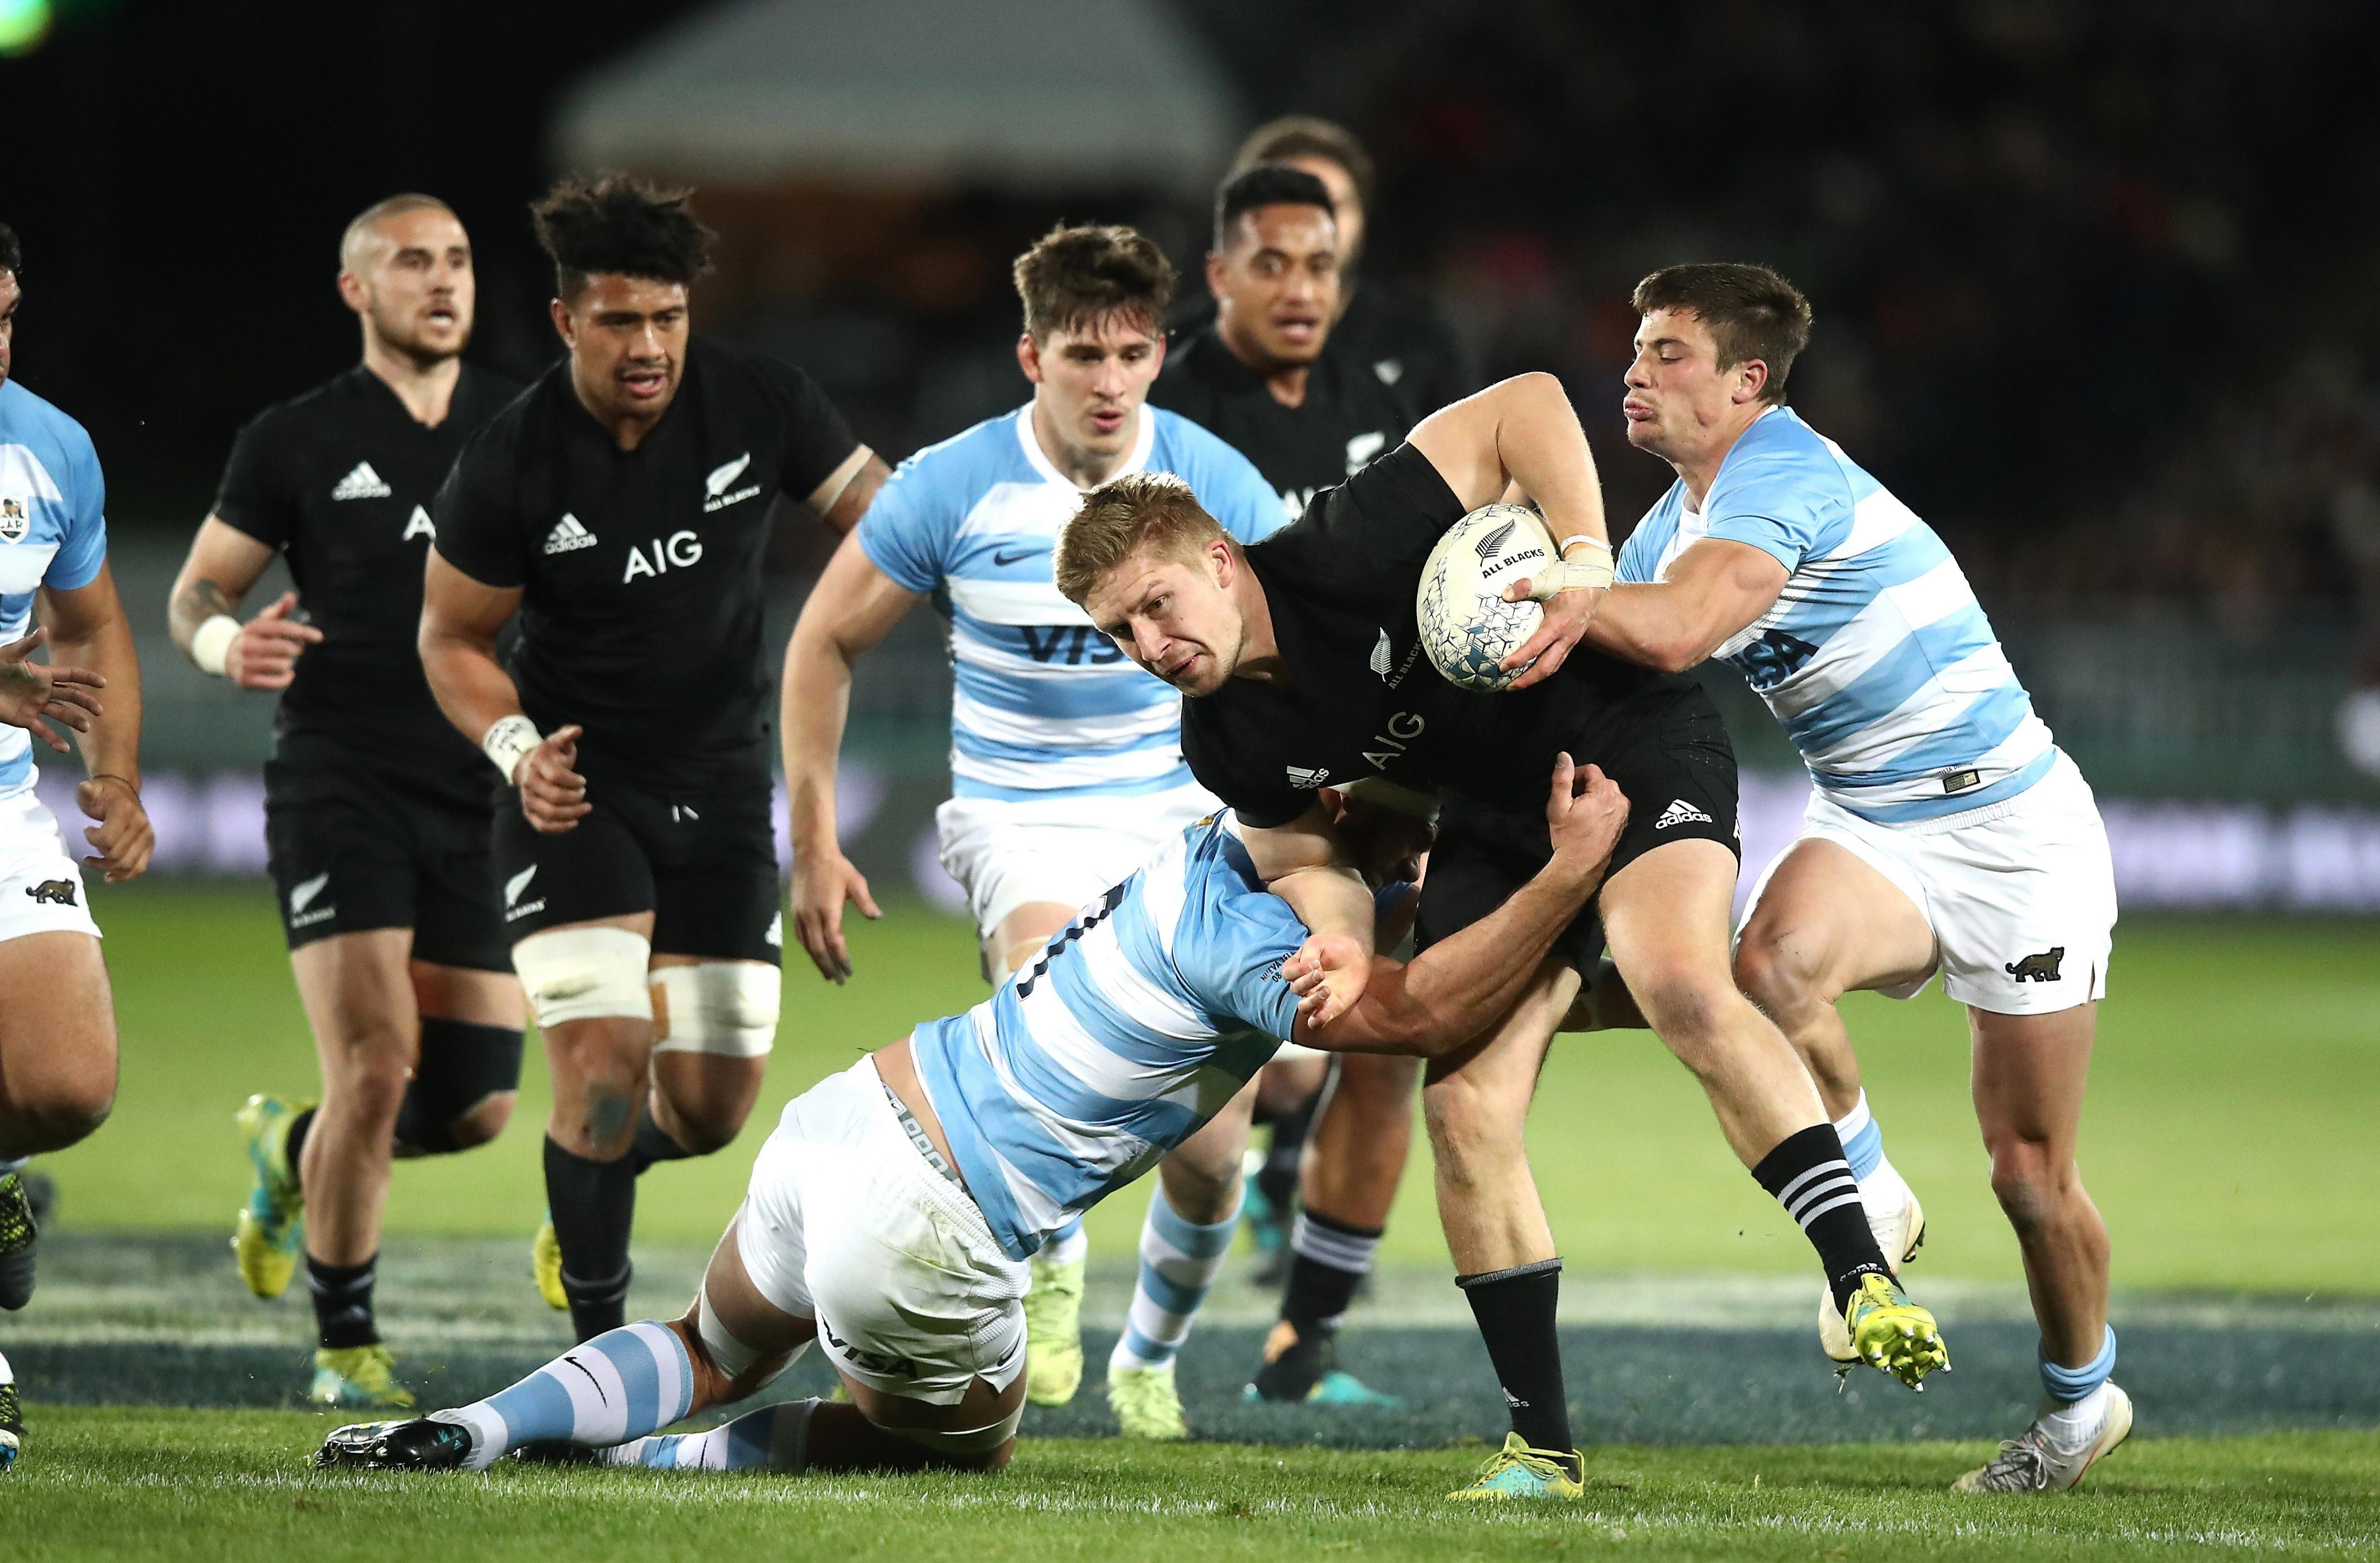 New Zealand are looking to complete the double over Argentina in the Rugby Championship